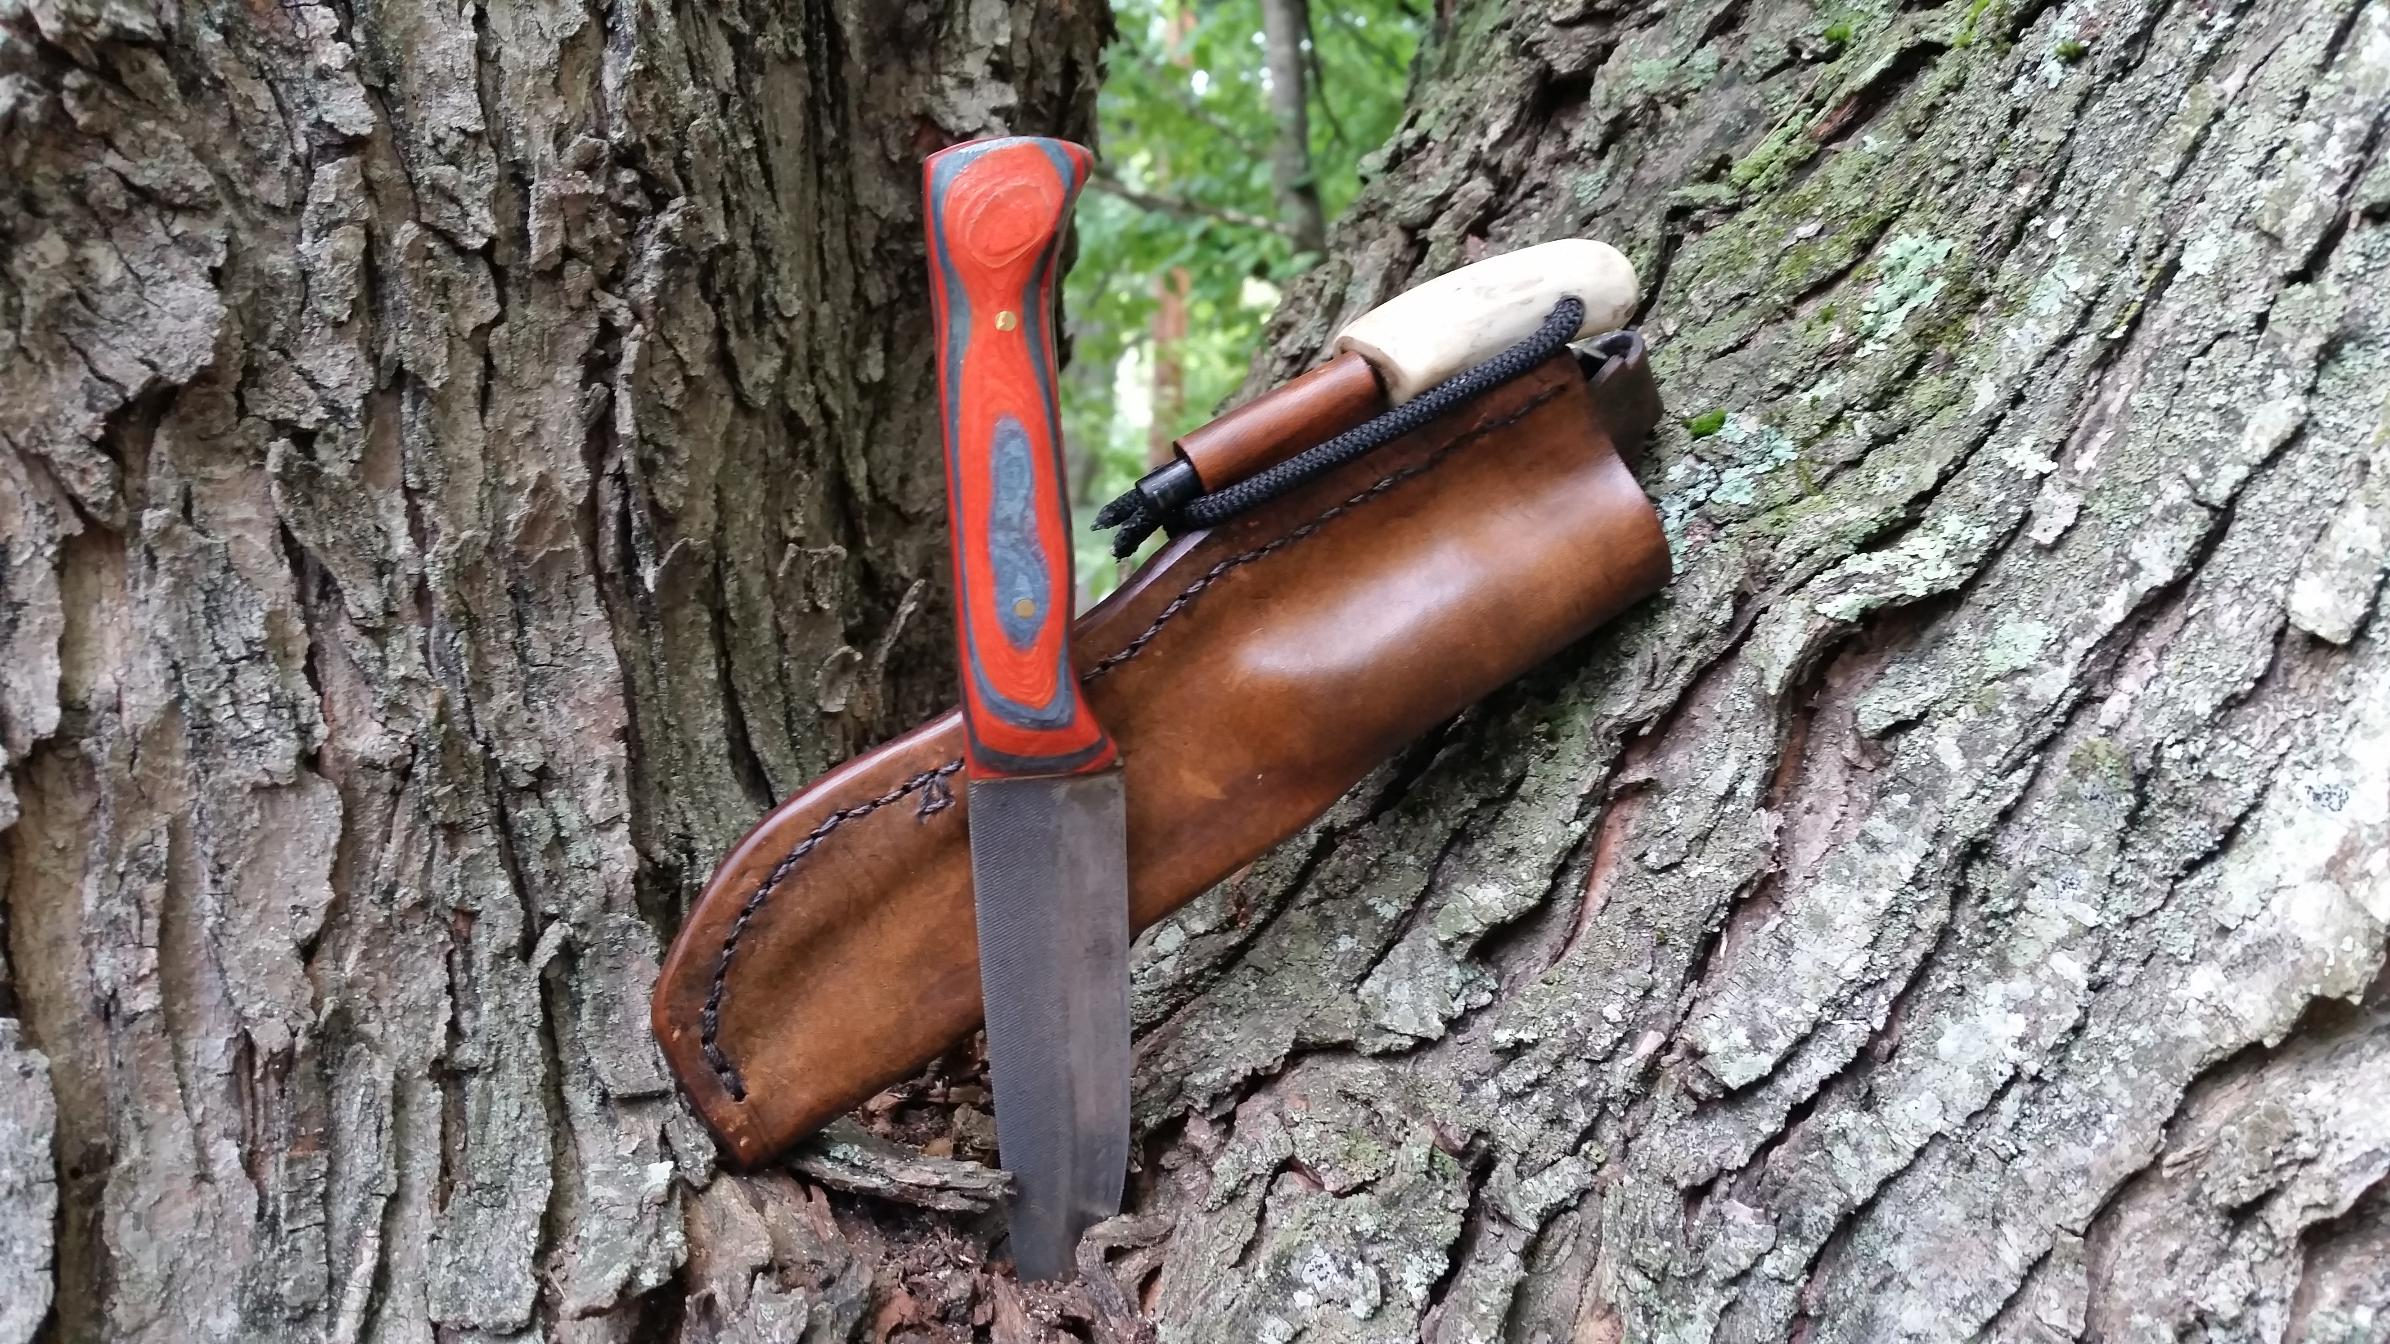 Bwca solo knife s boundary waters private group forum